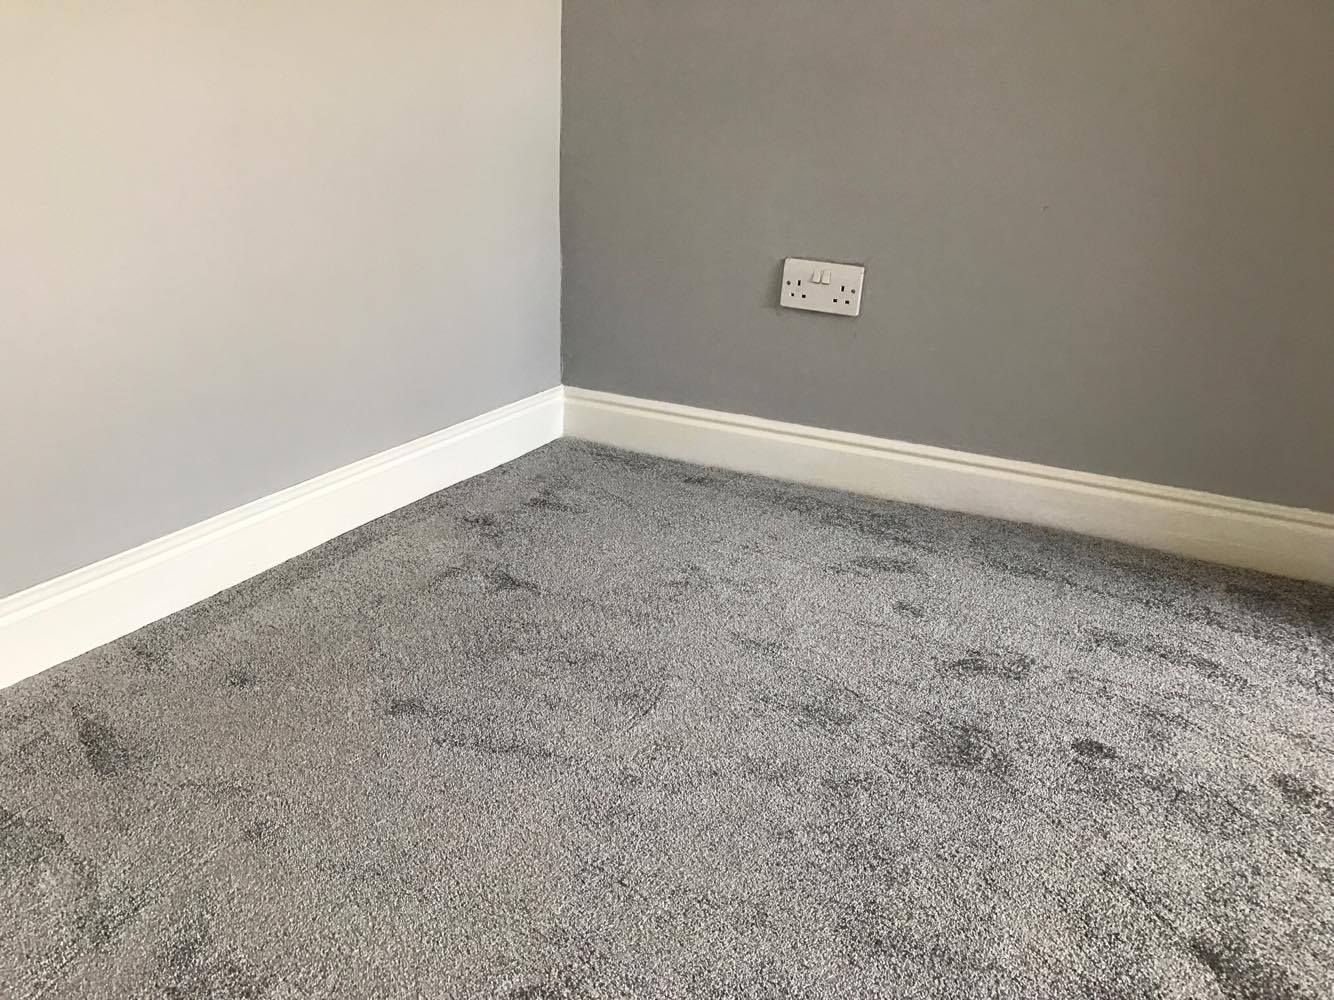 quality carpets, CARPETS CHESTER, CARPETS WREXHAM